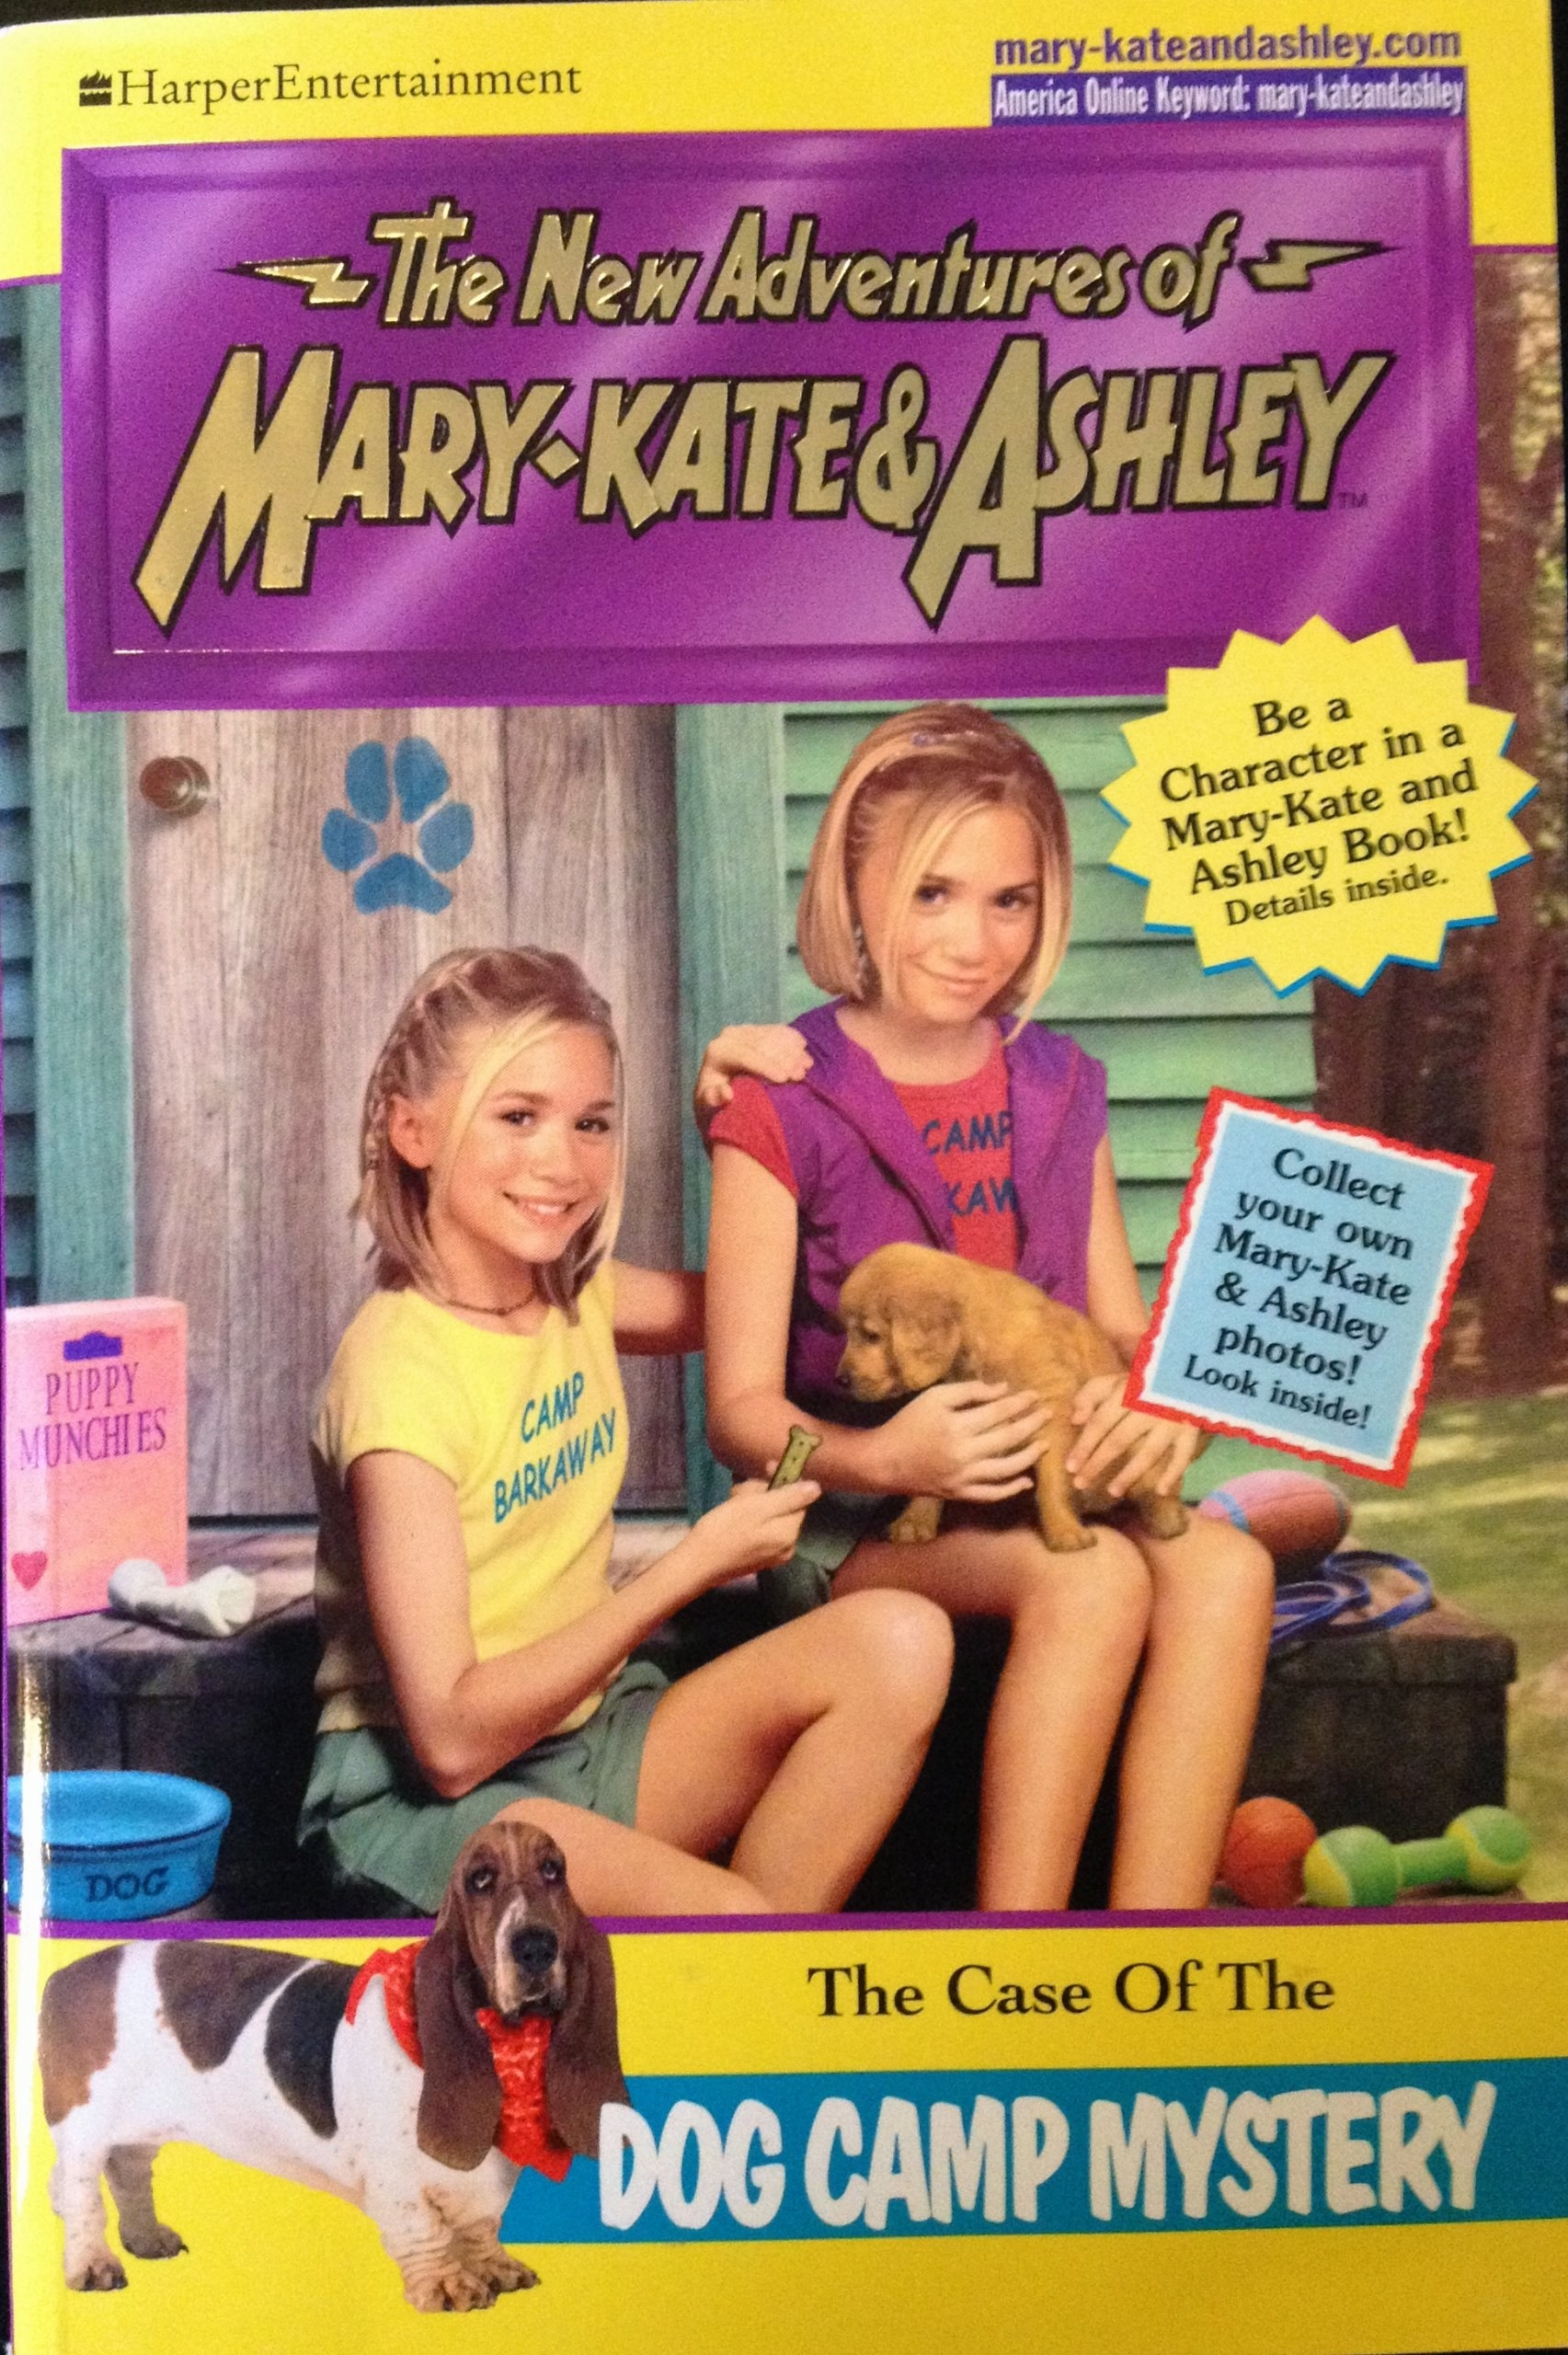 Book cover of Mary Kate and Ashley Olsen, sitting with a dog